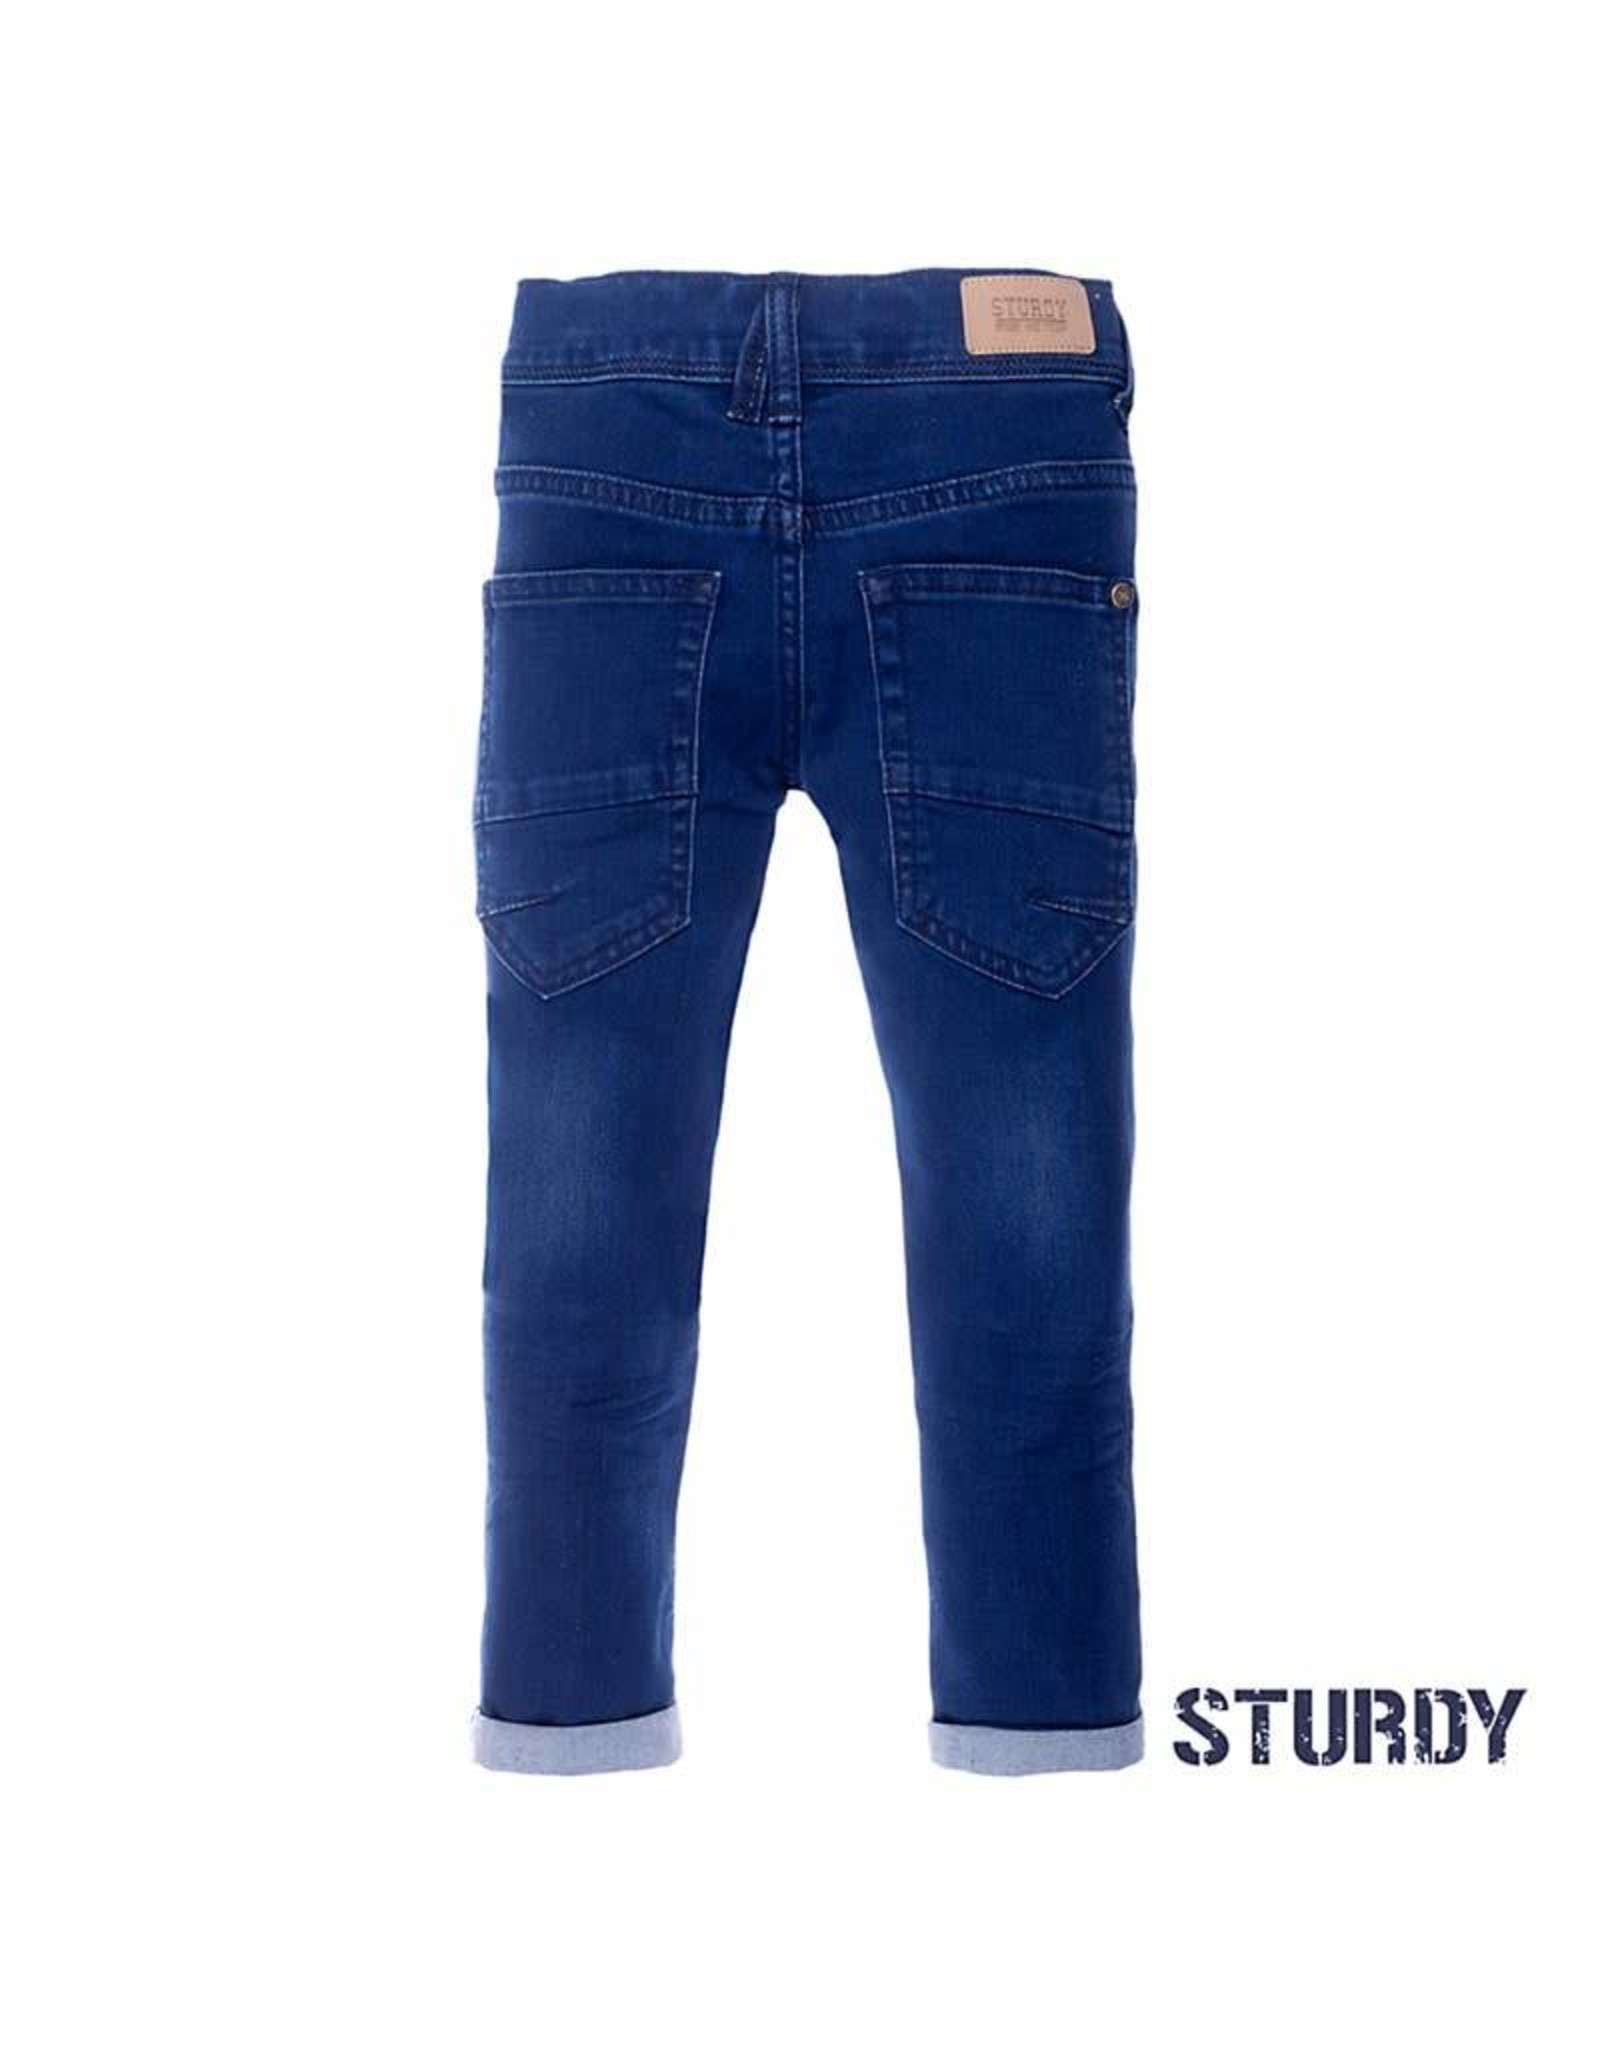 Sturdy Jeans 993 dark blue slim fit